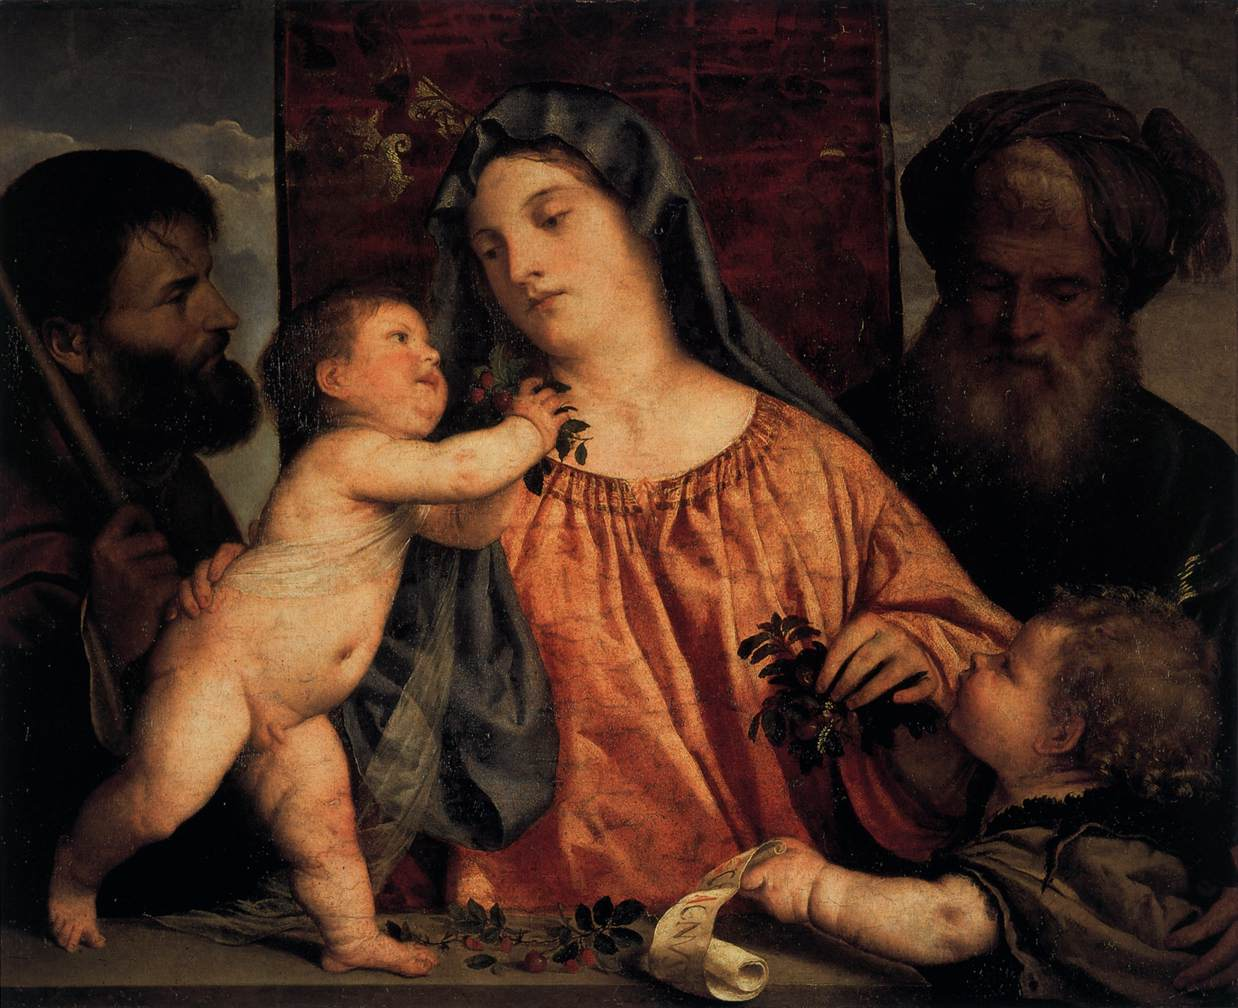 the paintings of tiziano vecelllio Tiziano vecelli or tiziano vecellio (pronounced [titˈtsjaːno veˈtʃɛlljo] c 1488/1490 – 27 august 1576), known in english as titian , was an italian painter, the most important member of the 16th-century venetian school.